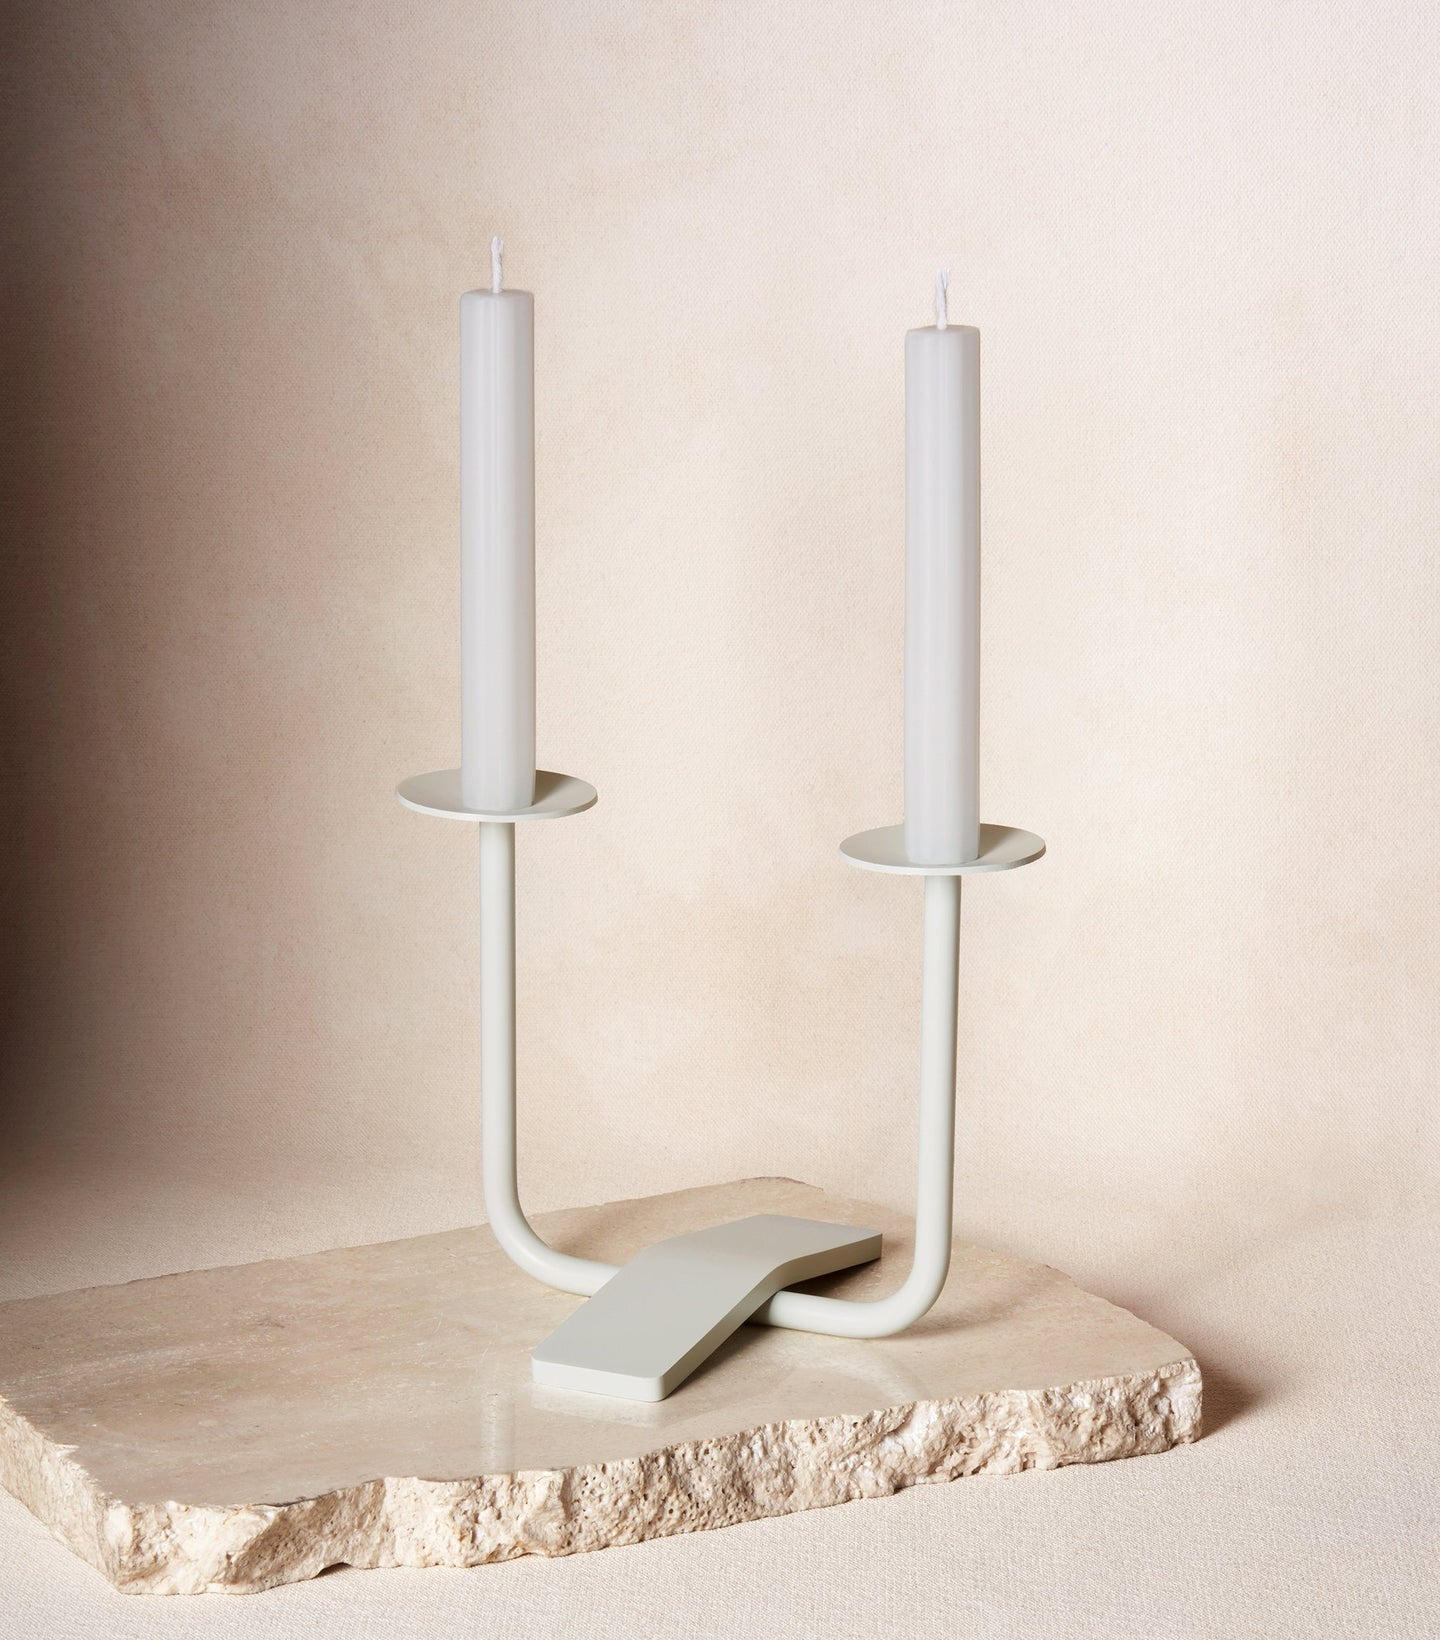 Load image into Gallery viewer, Two Shabbat Candles in Cloud White with Candle Holder